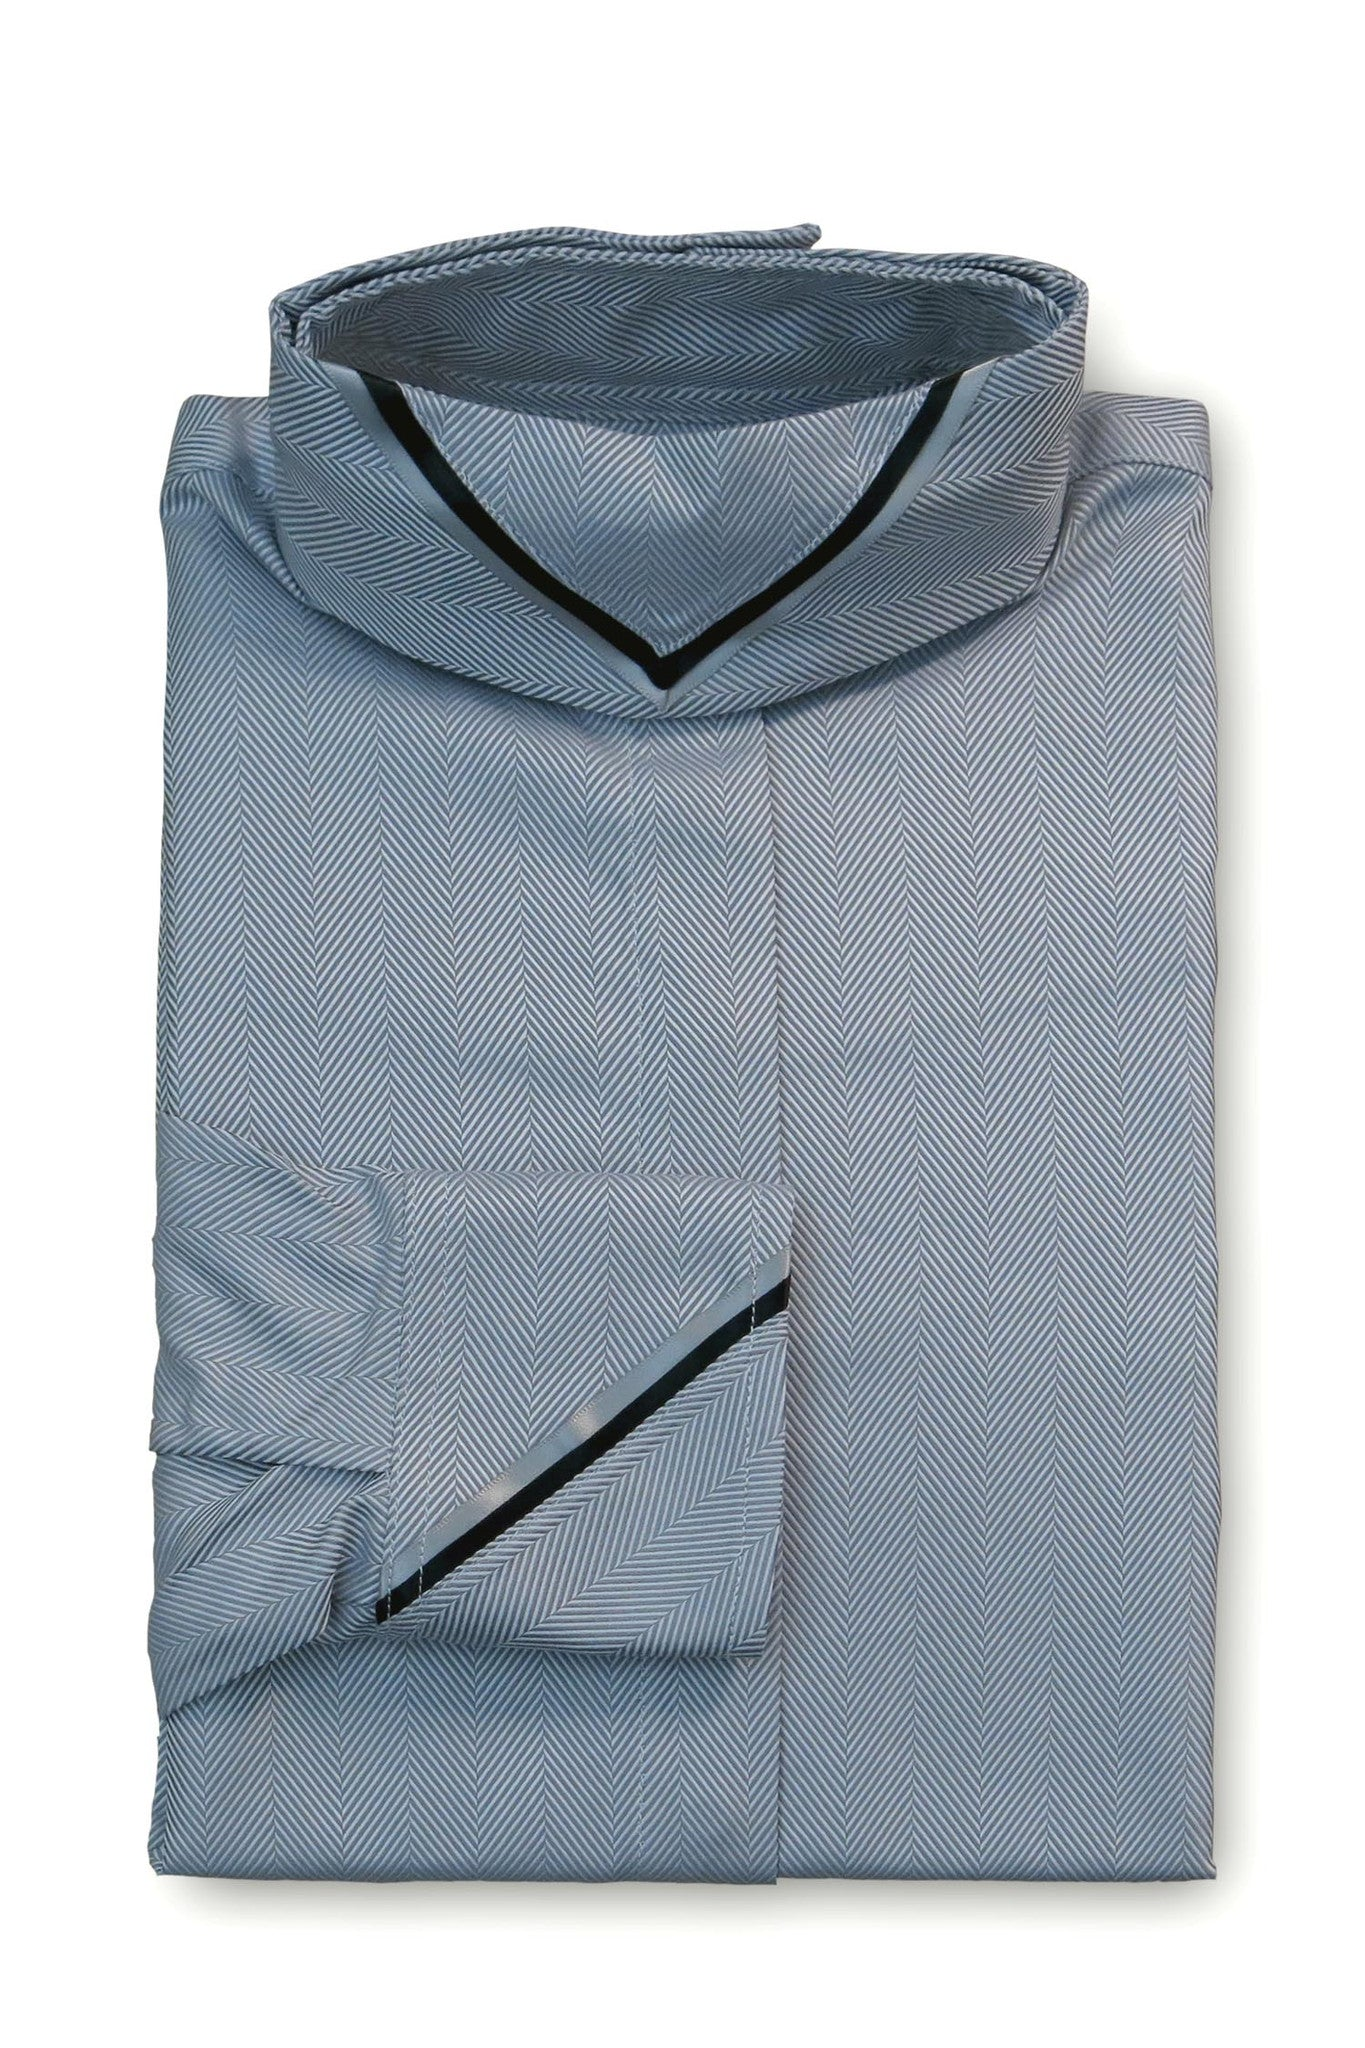 Dark Grey Herringbone - Slate & Black